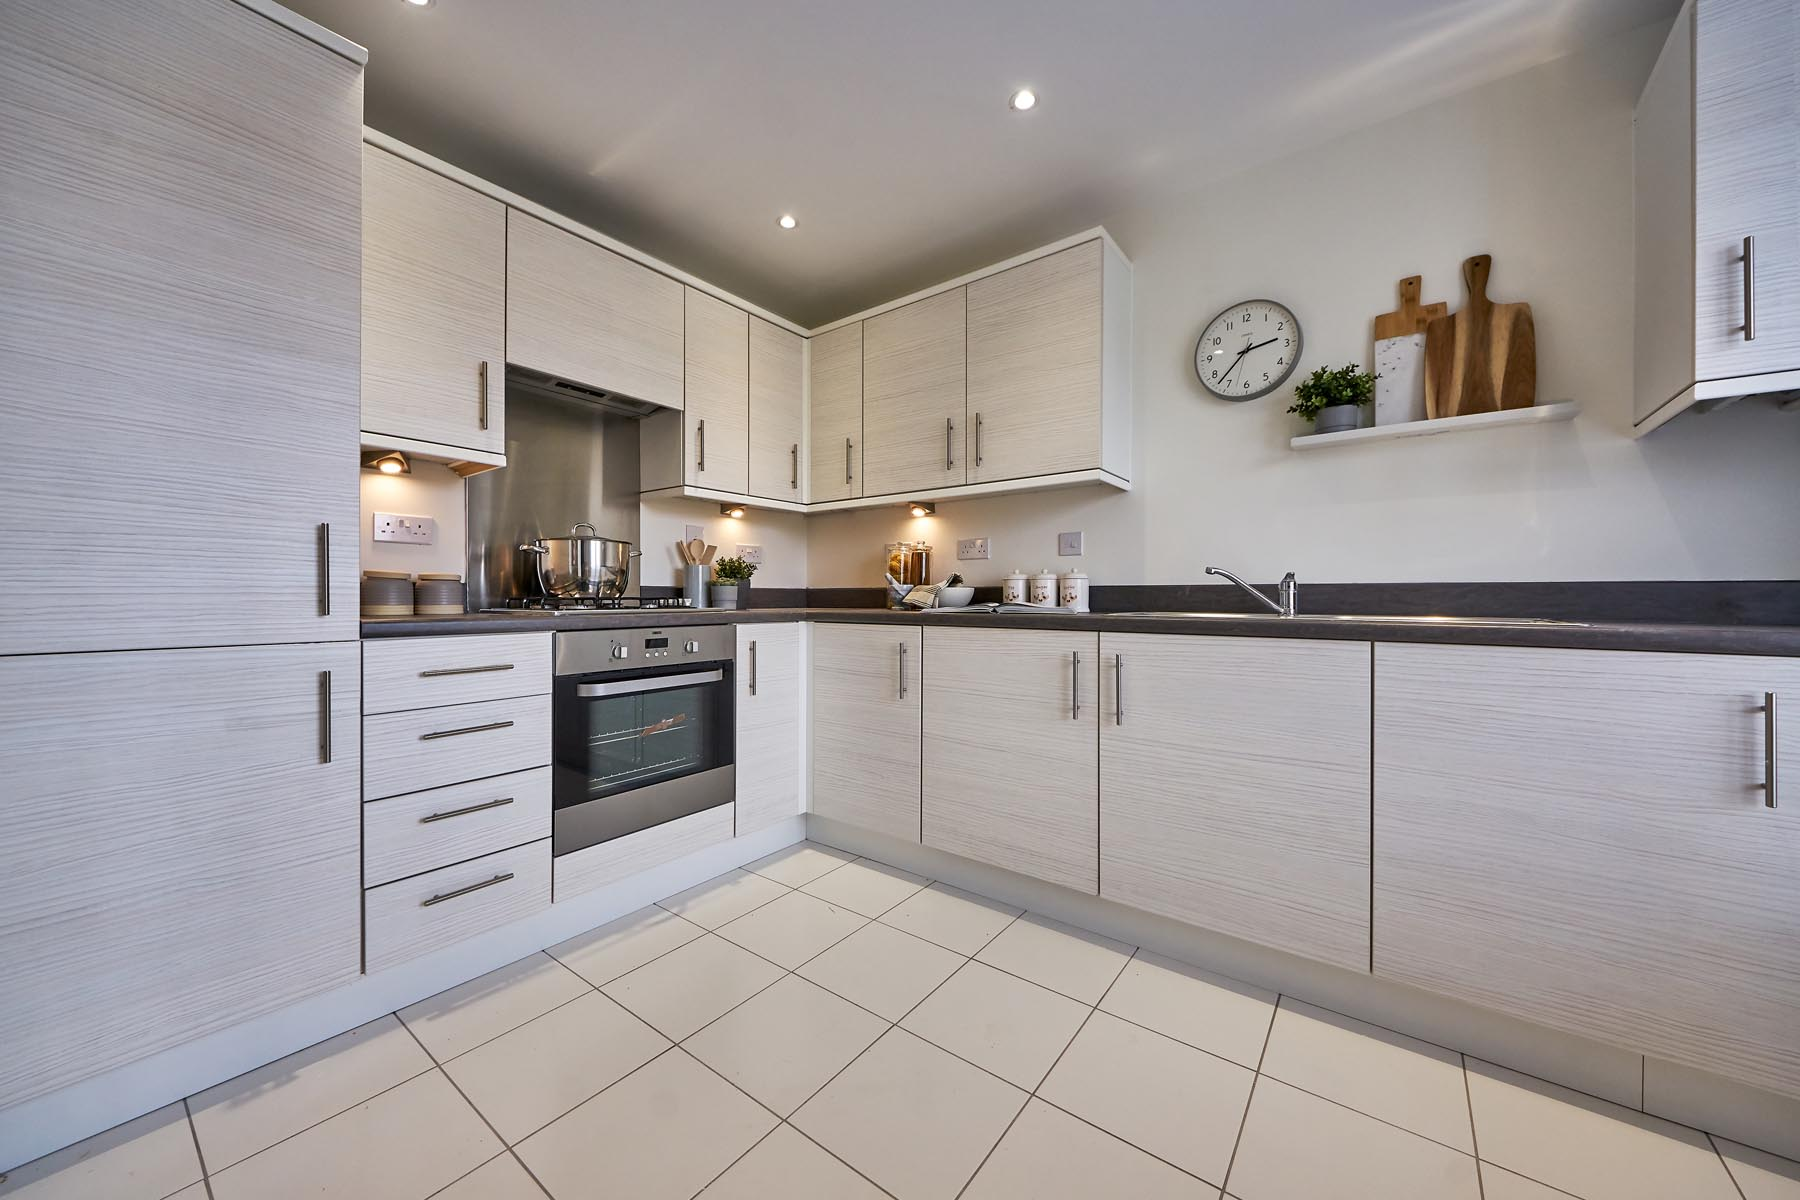 TW Exeter - Buckingham Heights - Flatford example kitchen